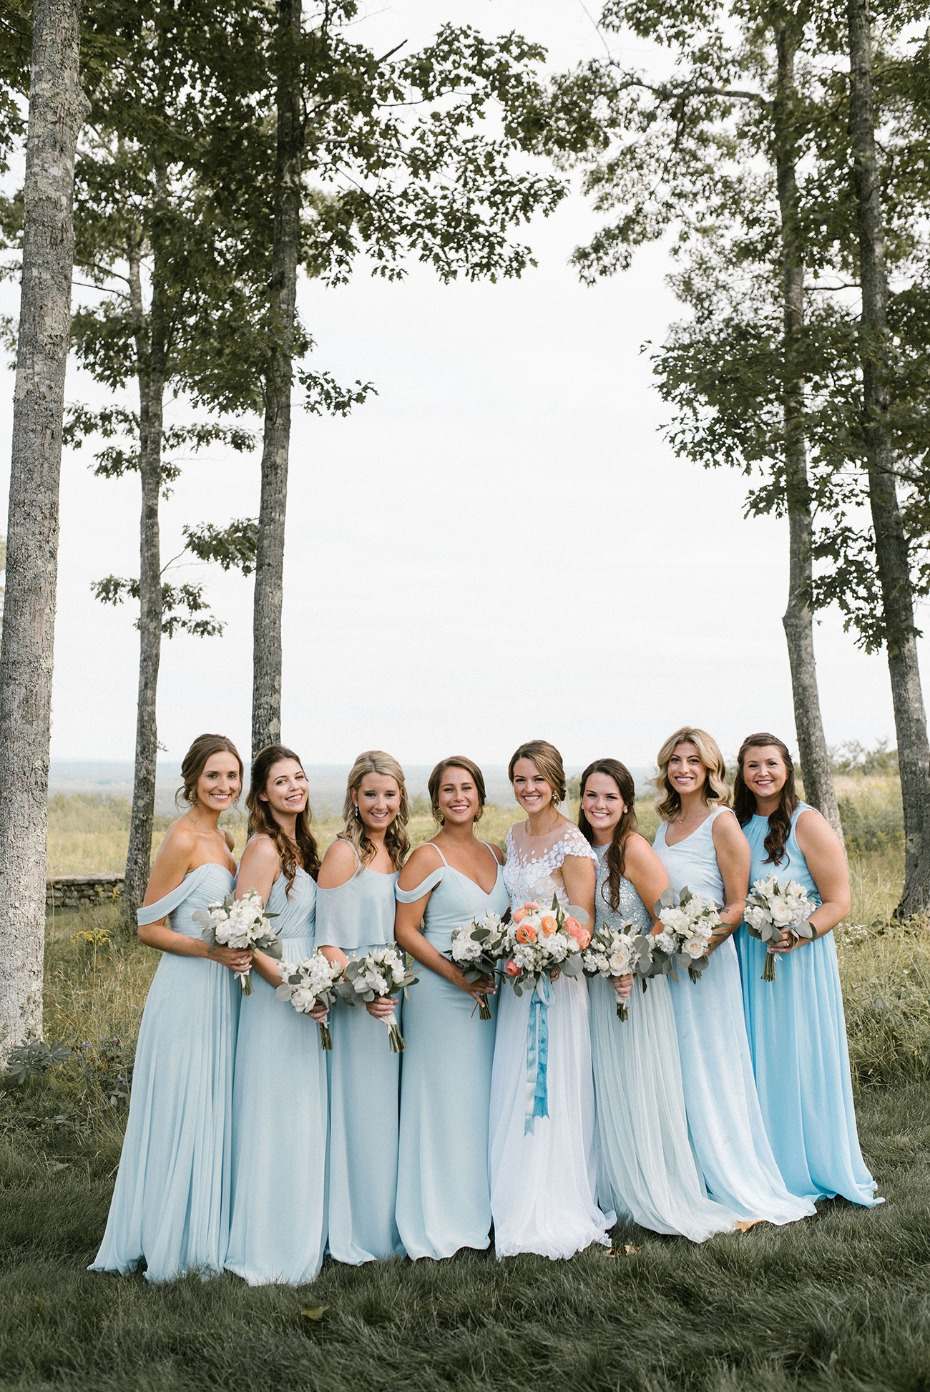 Mix and match bridesmaid dresses in light blue